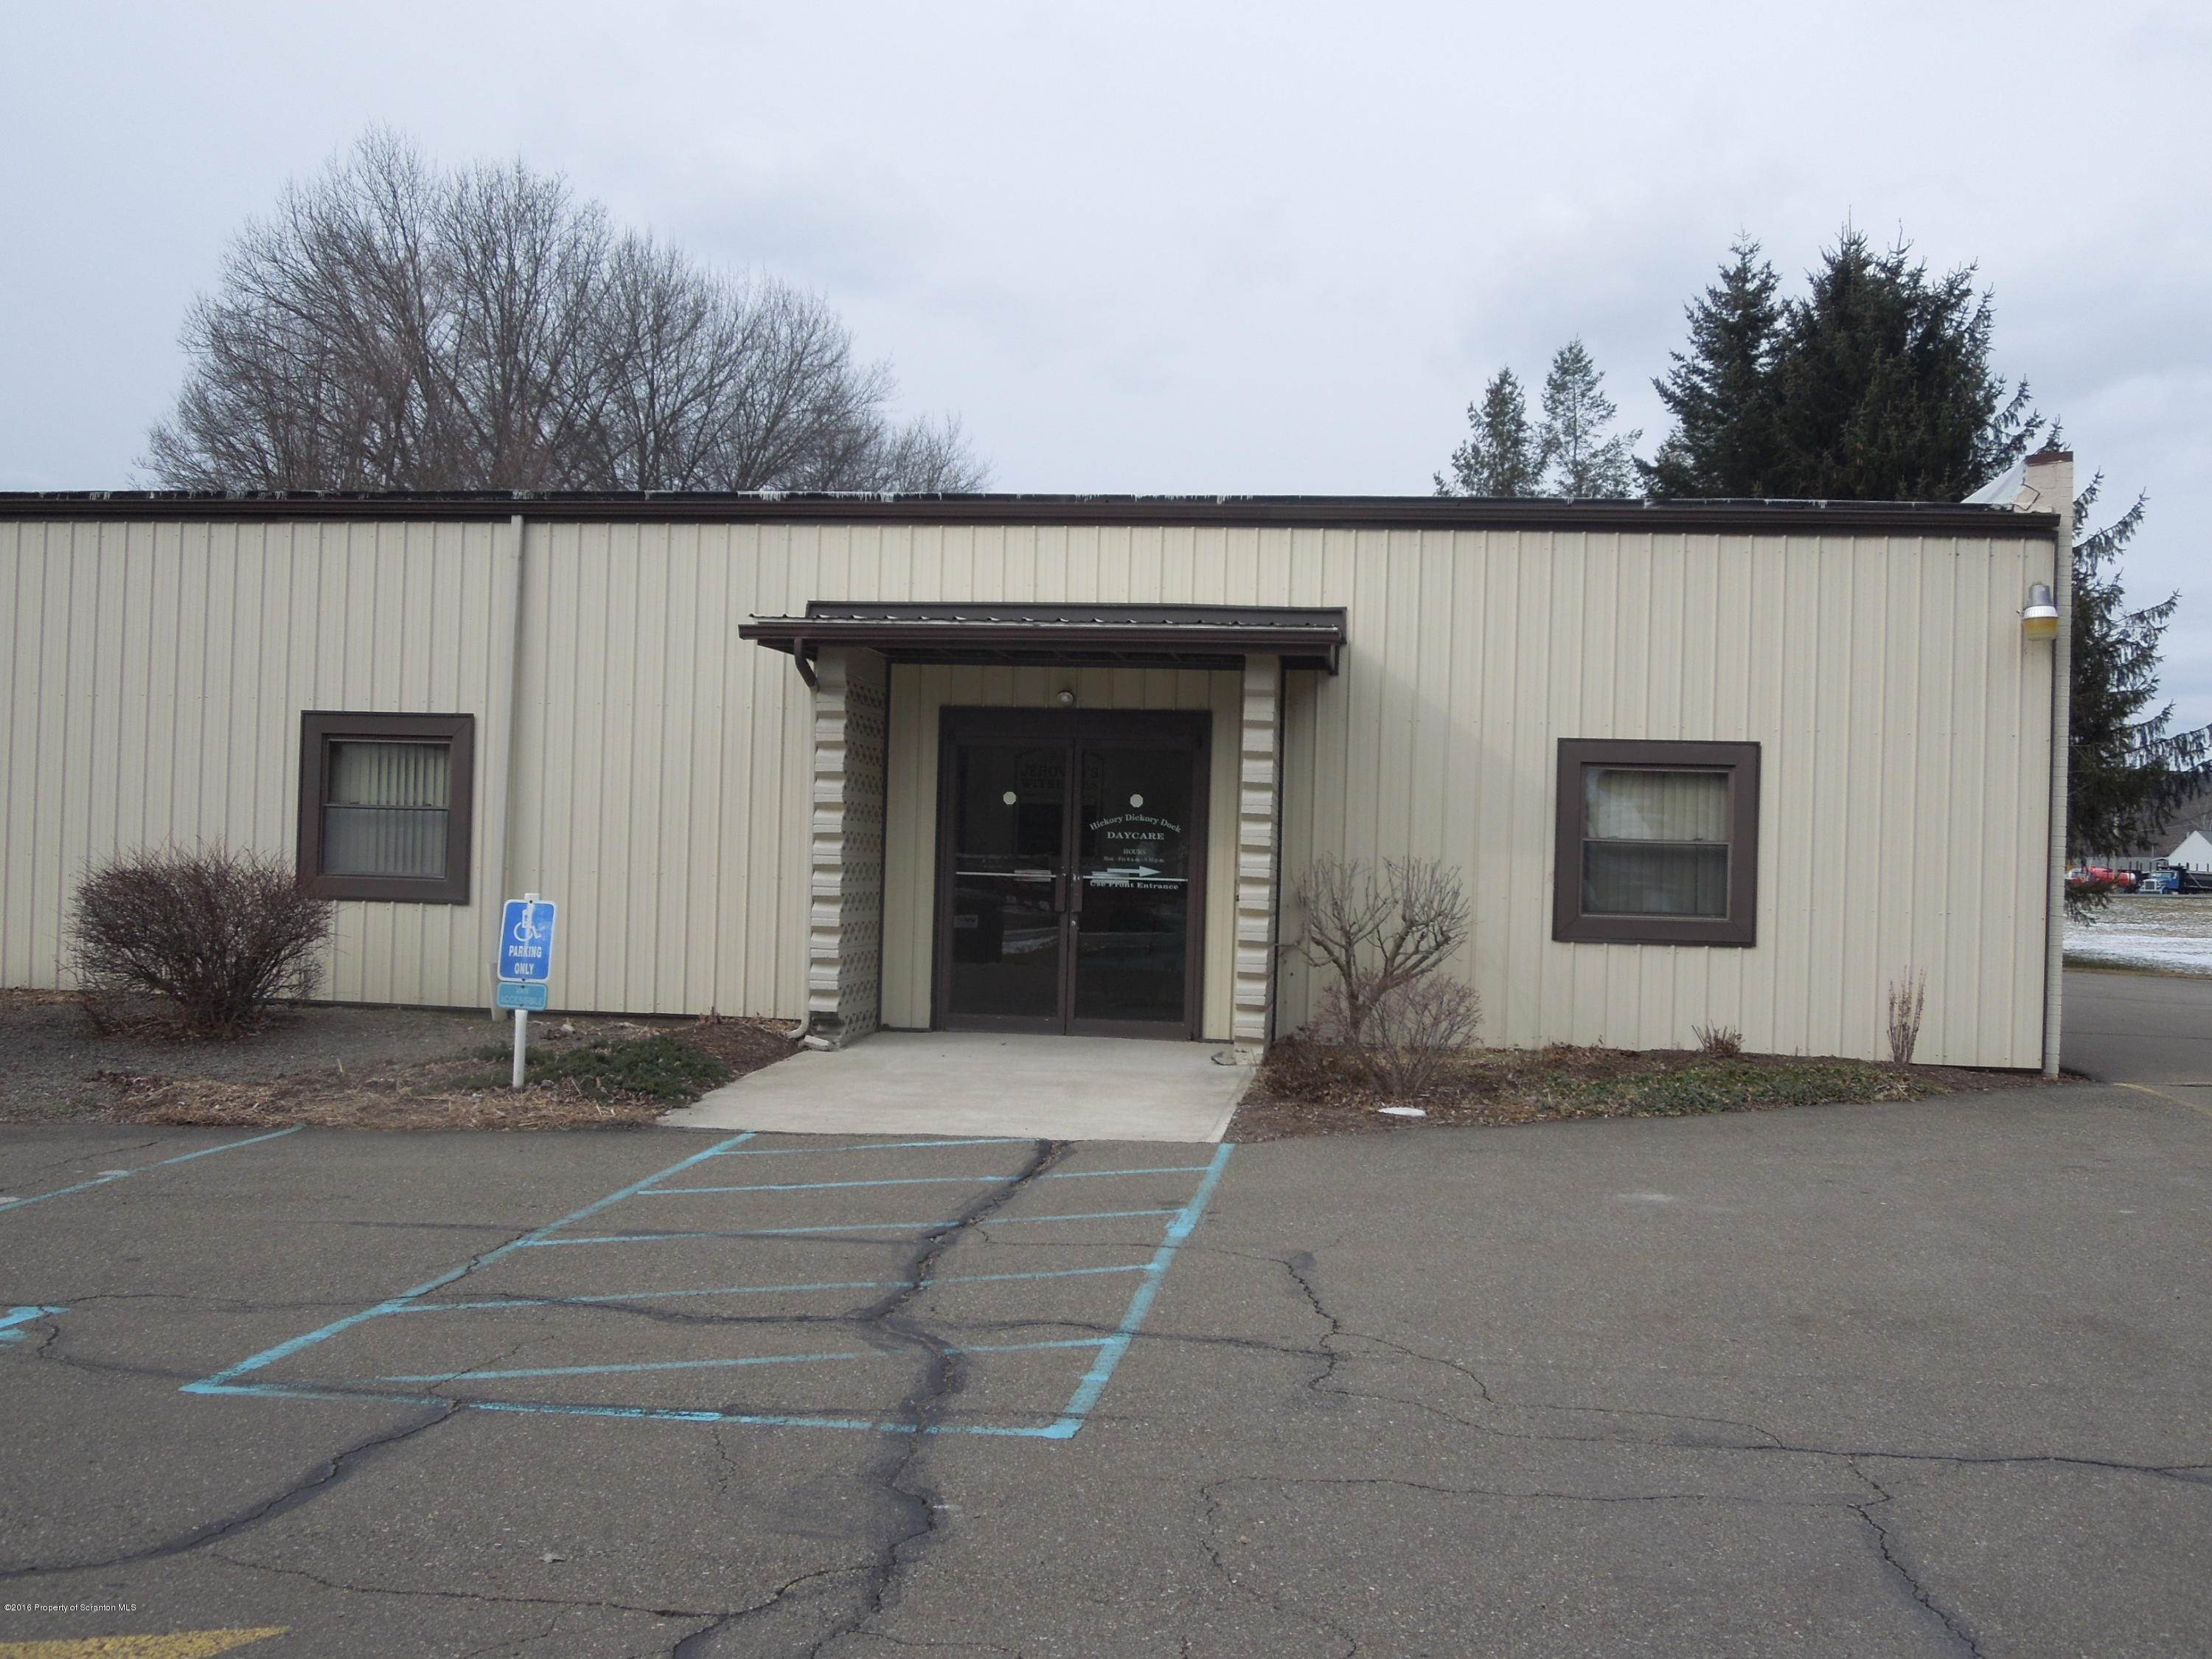 Commercial for Rent at 119 Sr 92 Suite 2 Tunkhannock, Pennsylvania 18657 United States